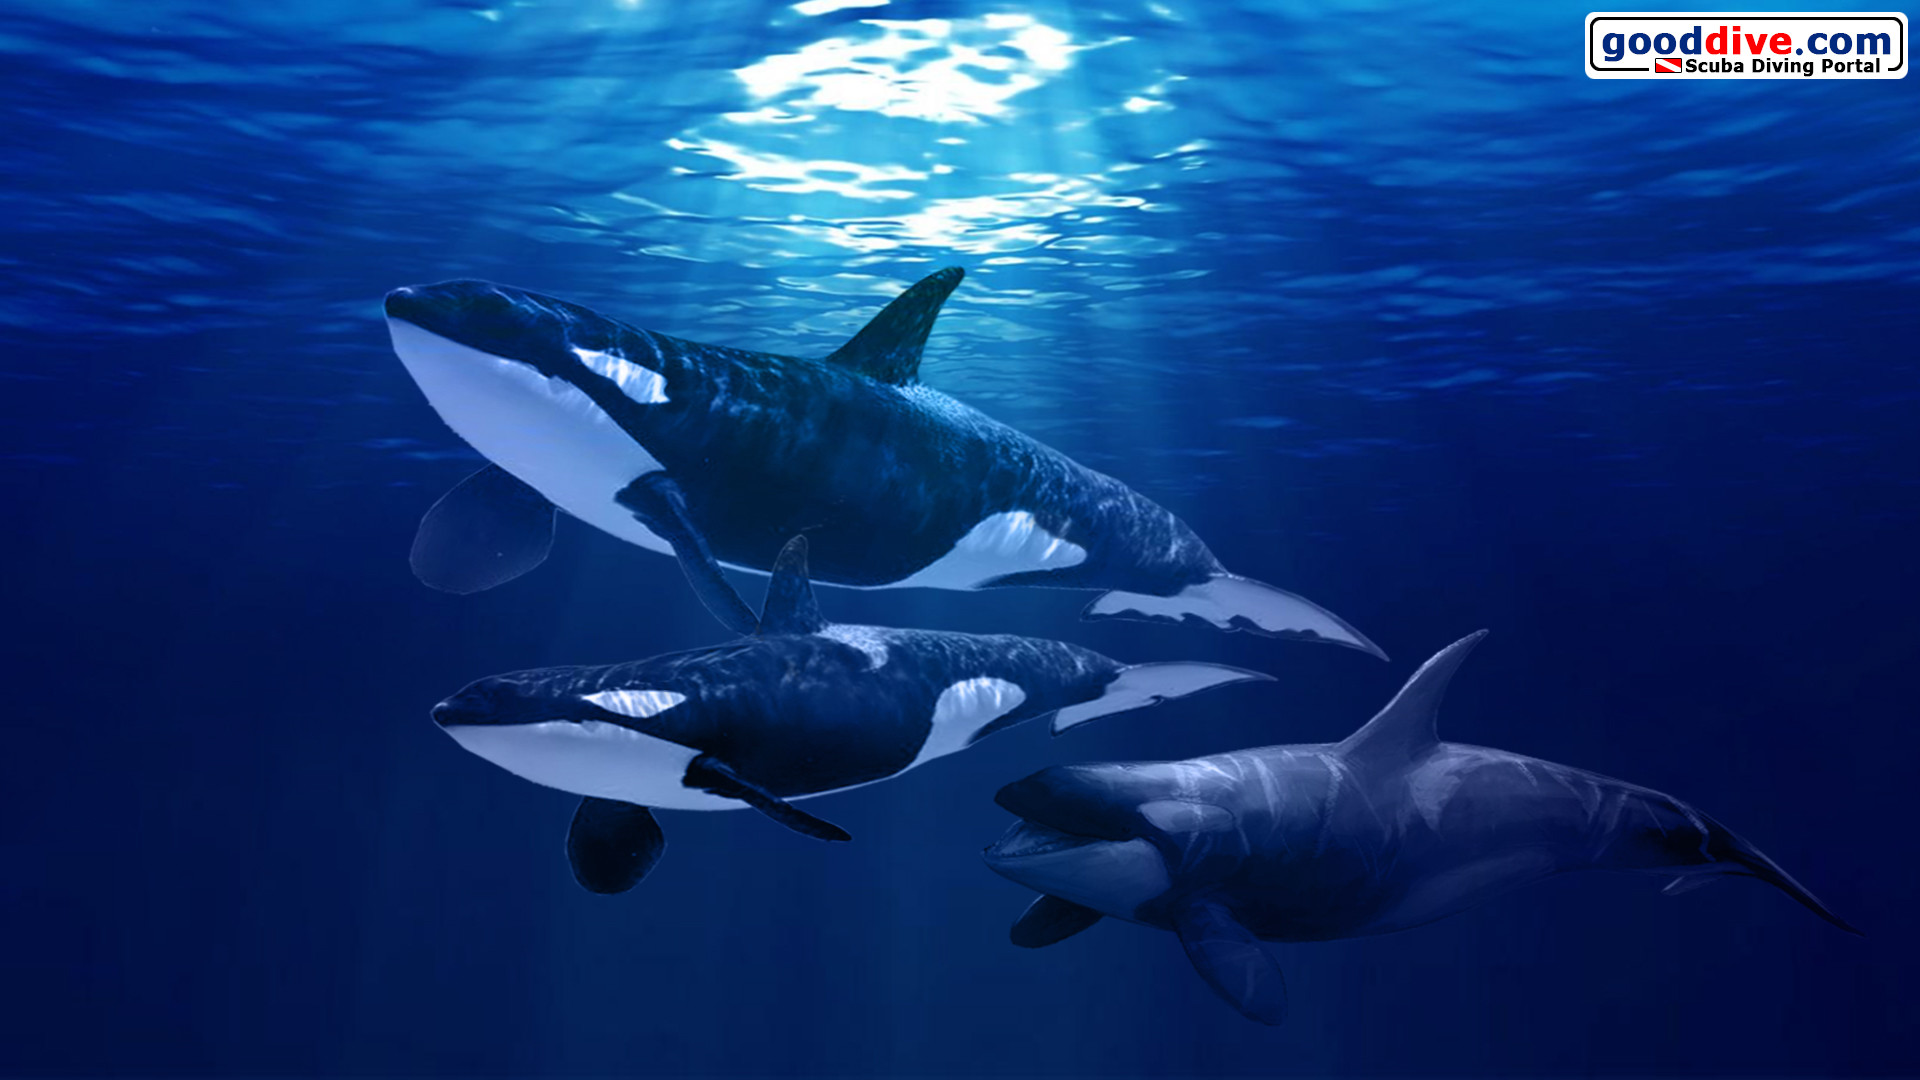 Orca whale wallpaper 56 images 1920x1080 animal orca killer whale space wallpaper orcas pinterest 1600900 pictures of killer whales wallpapers thecheapjerseys Images